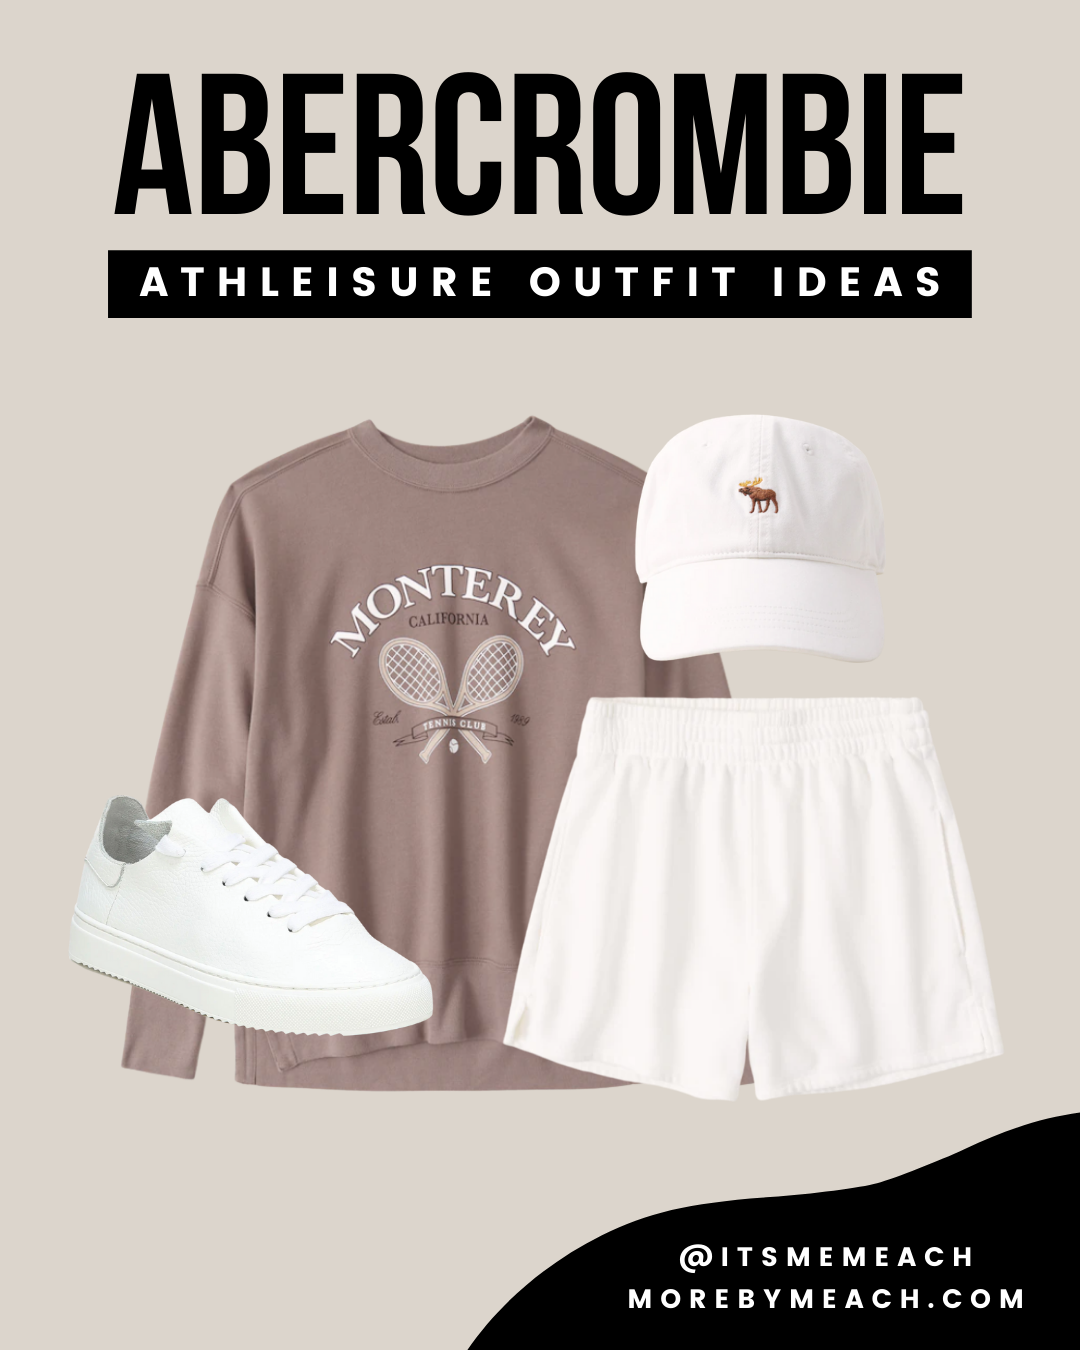 Fall Athleisure Outfits 2021 from Abercrombie and Fitch